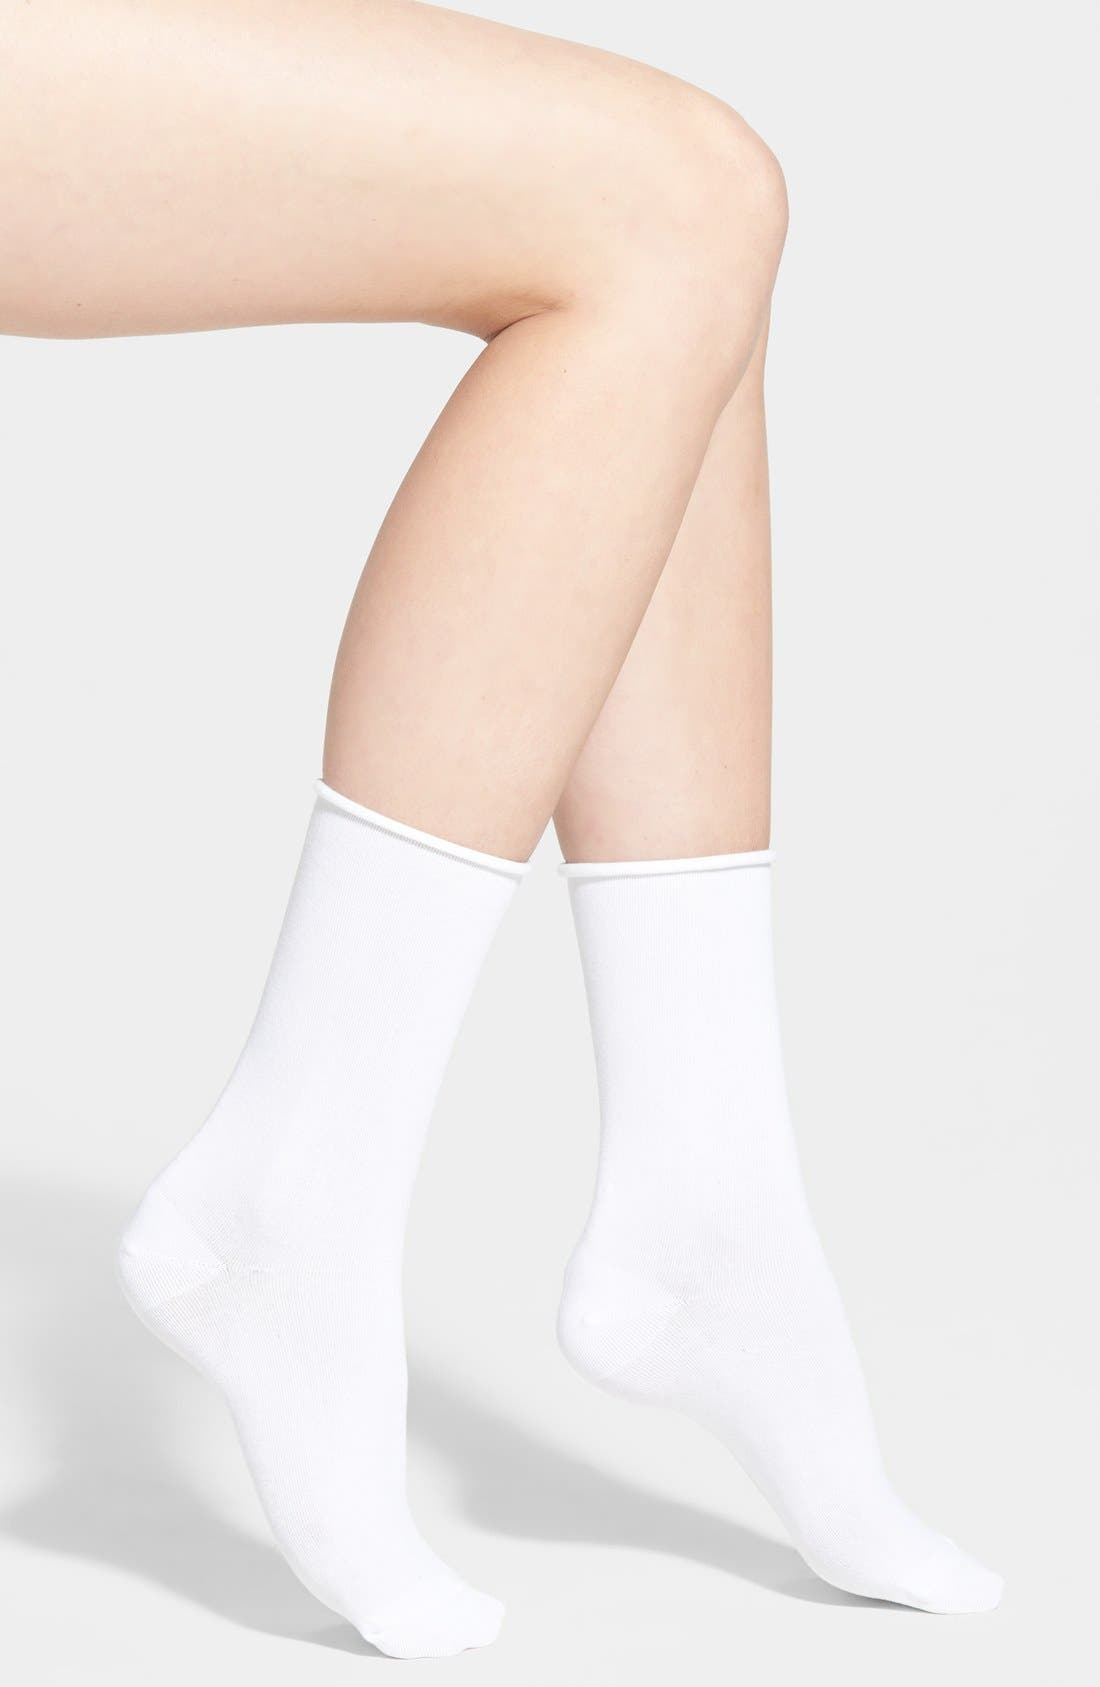 'Jeans' Socks,                             Main thumbnail 1, color,                             WHITE